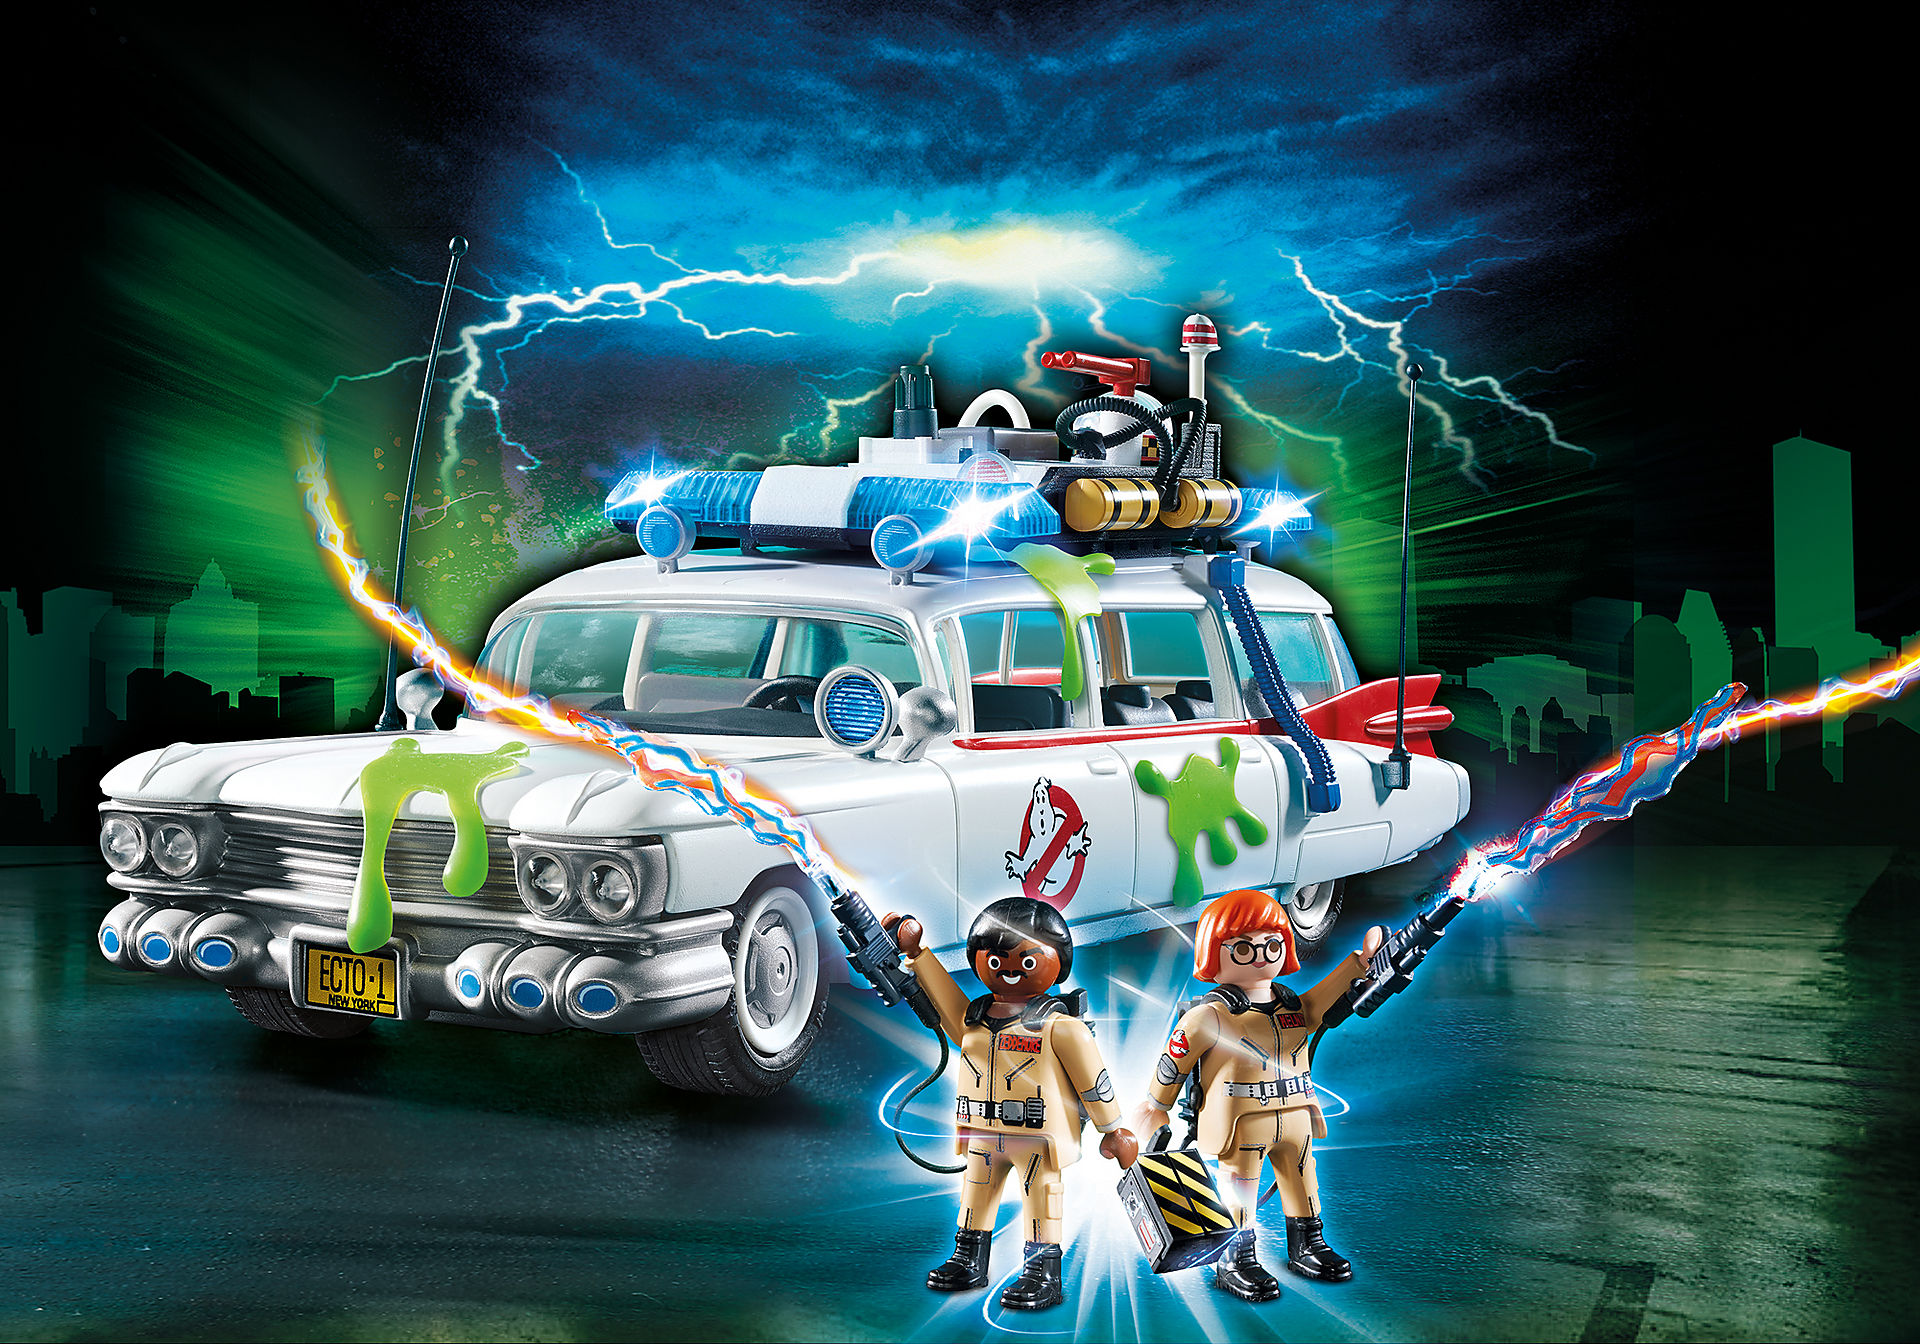 http://media.playmobil.com/i/playmobil/9220_product_detail/Ghostbusters™ Ecto-1